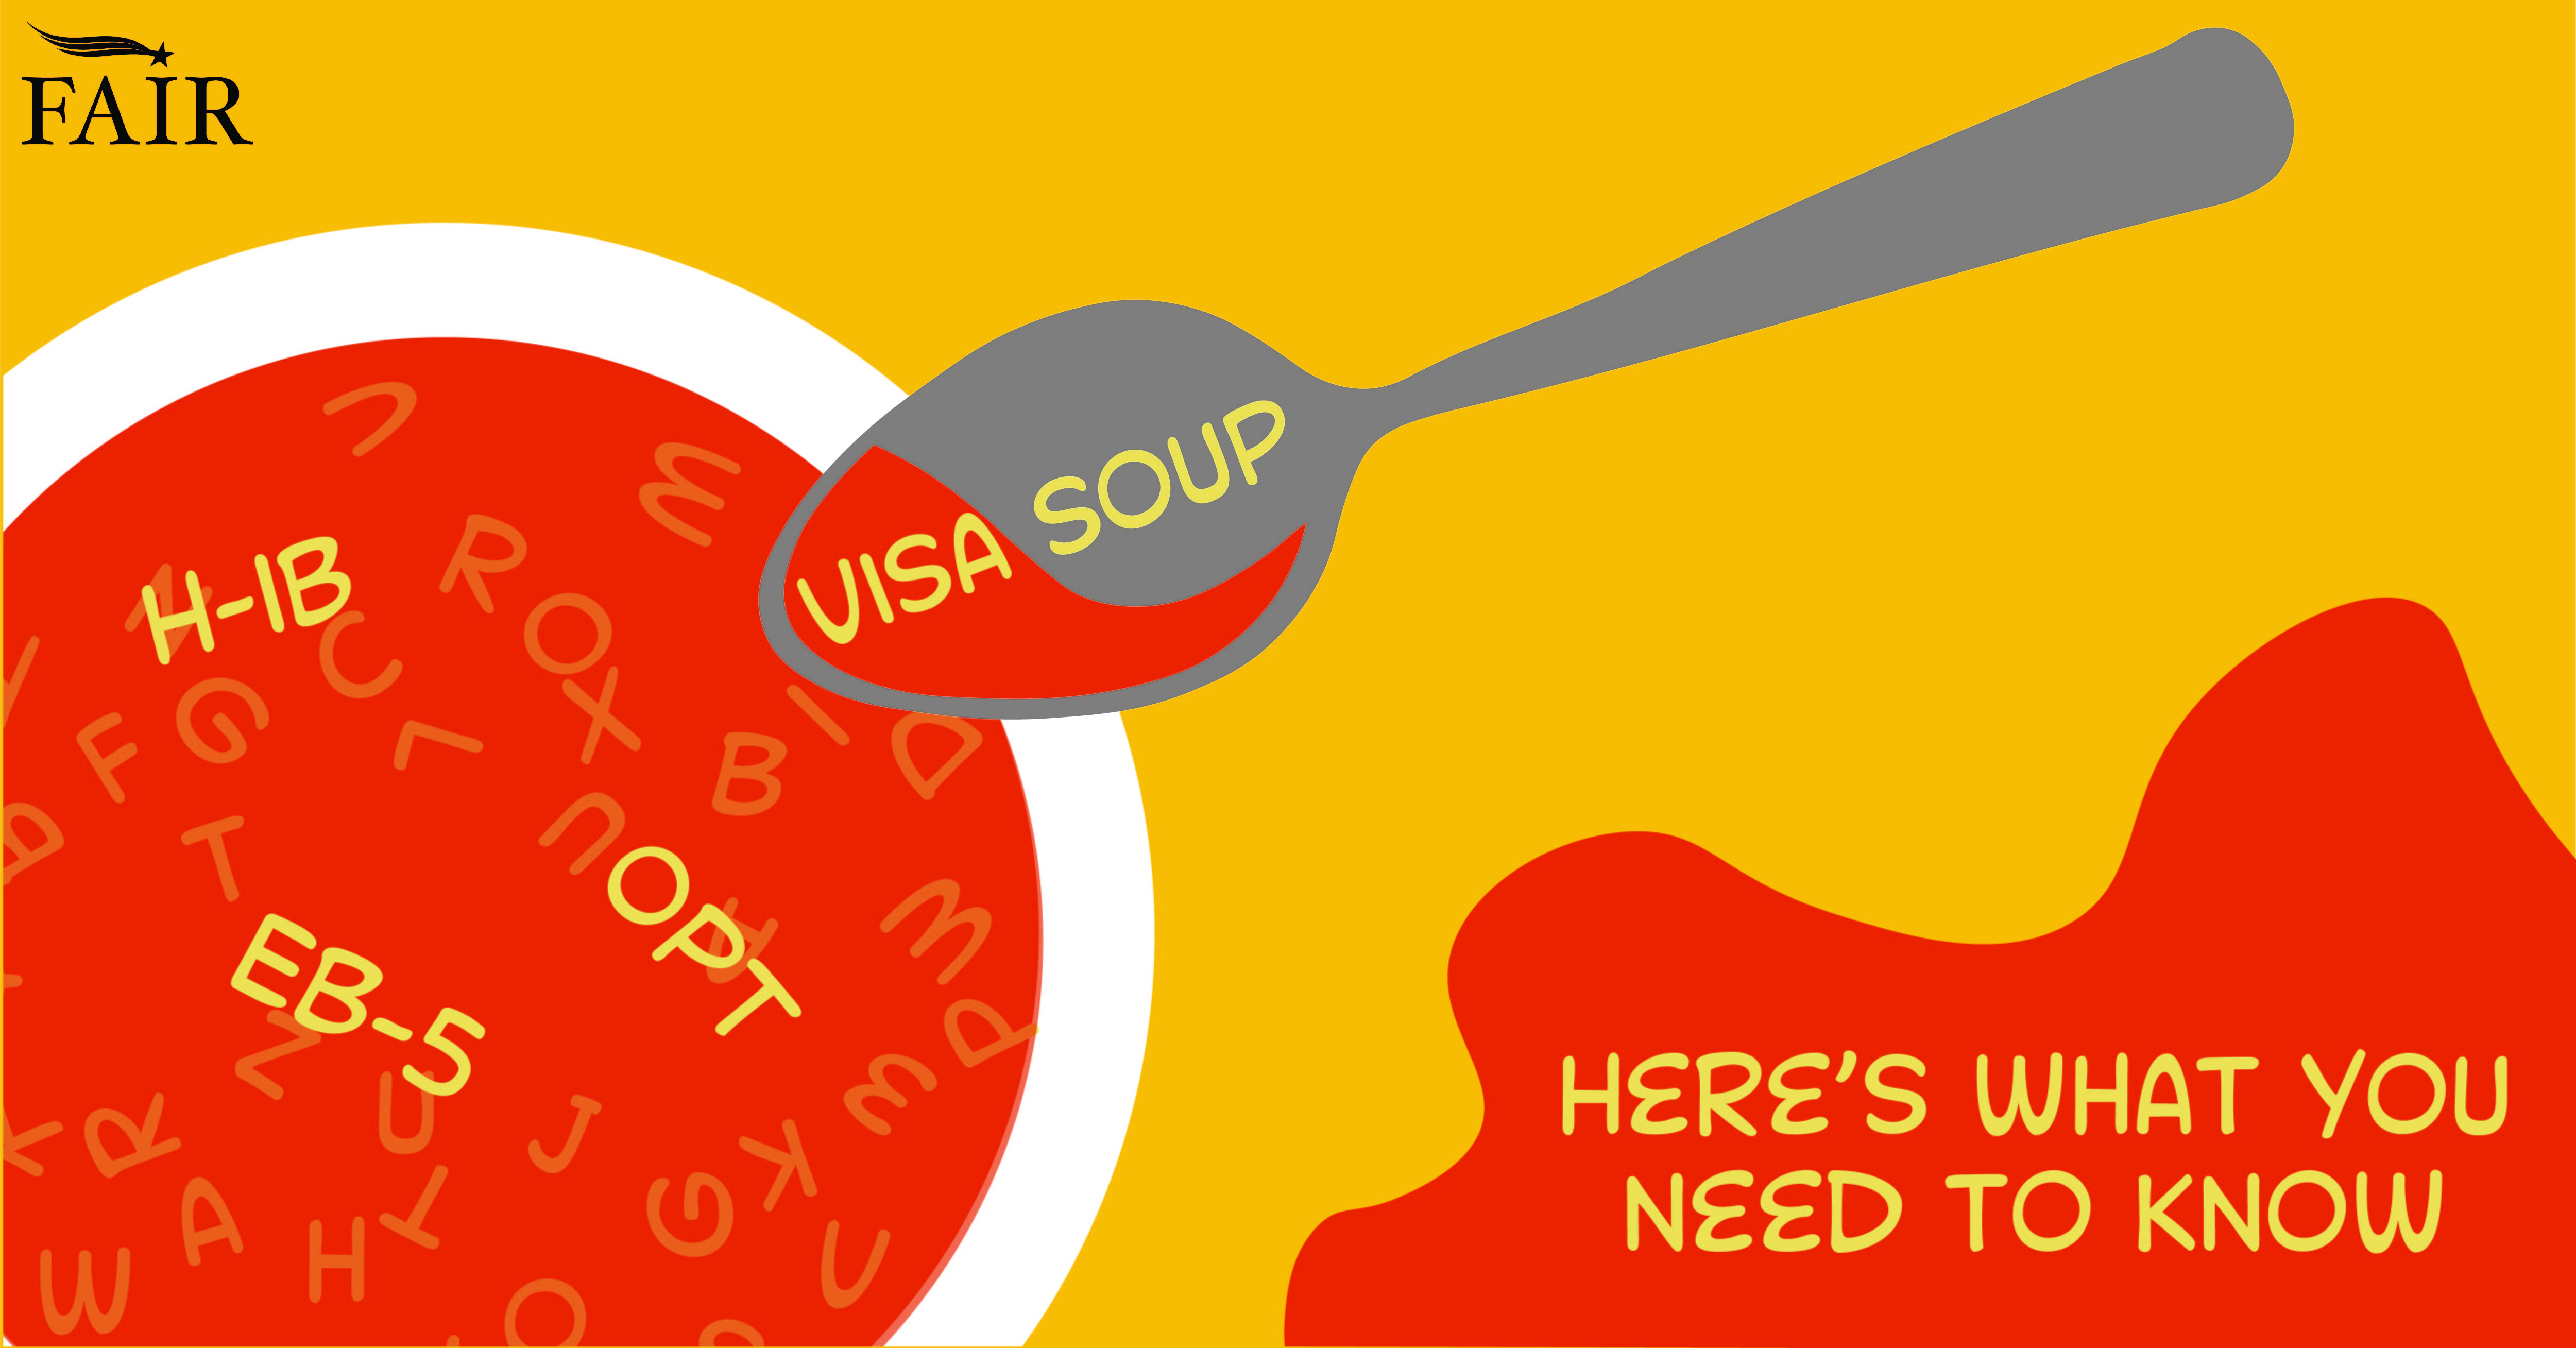 Bowl of Visa Soup